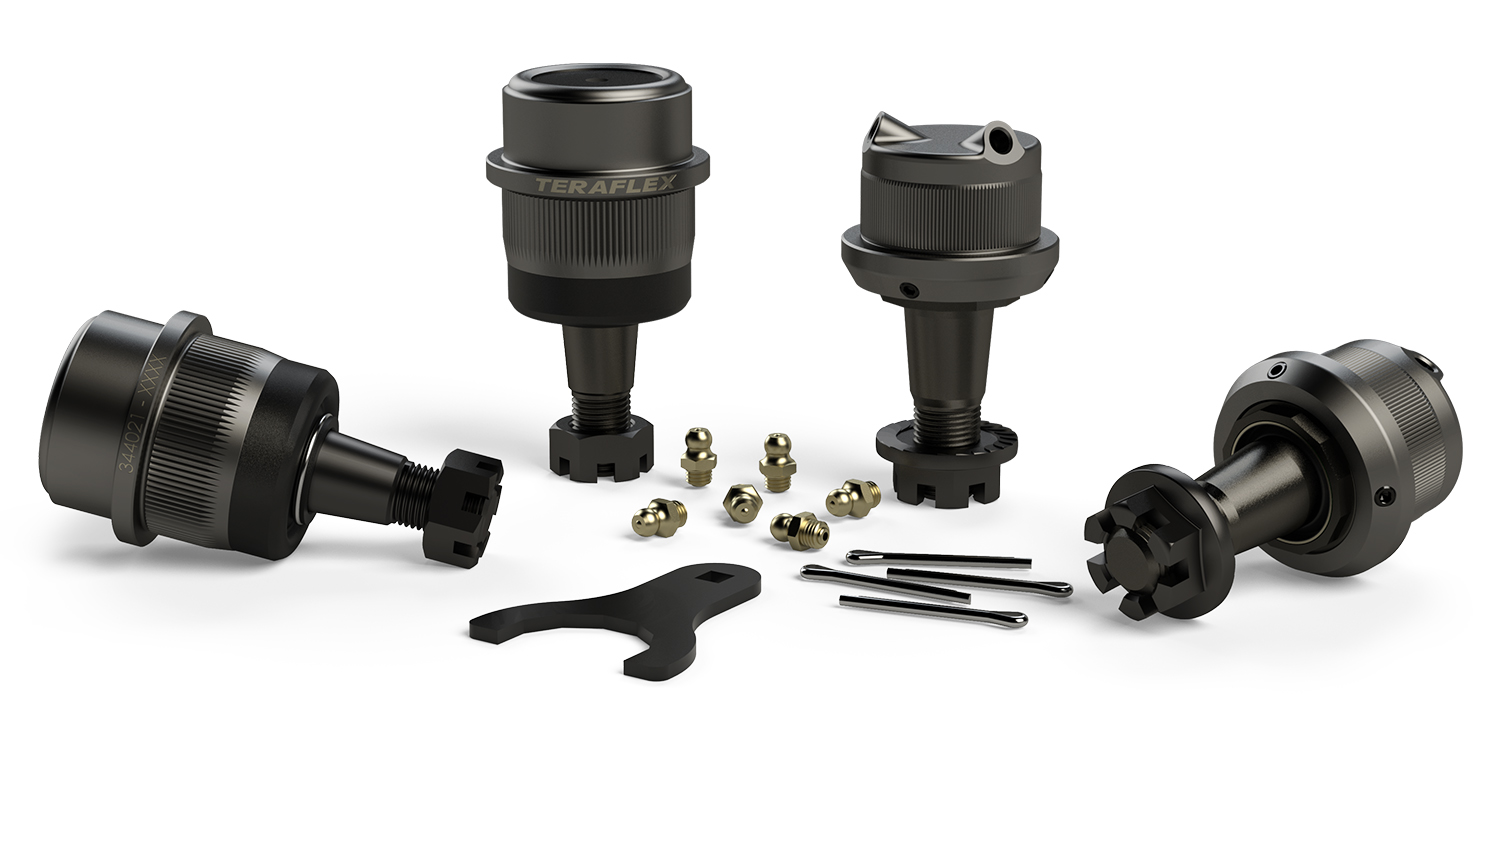 Teraflex HD Dana 30/44 Upper/Lower Ball Joint Kit W/ Knurl - TJ/LJ